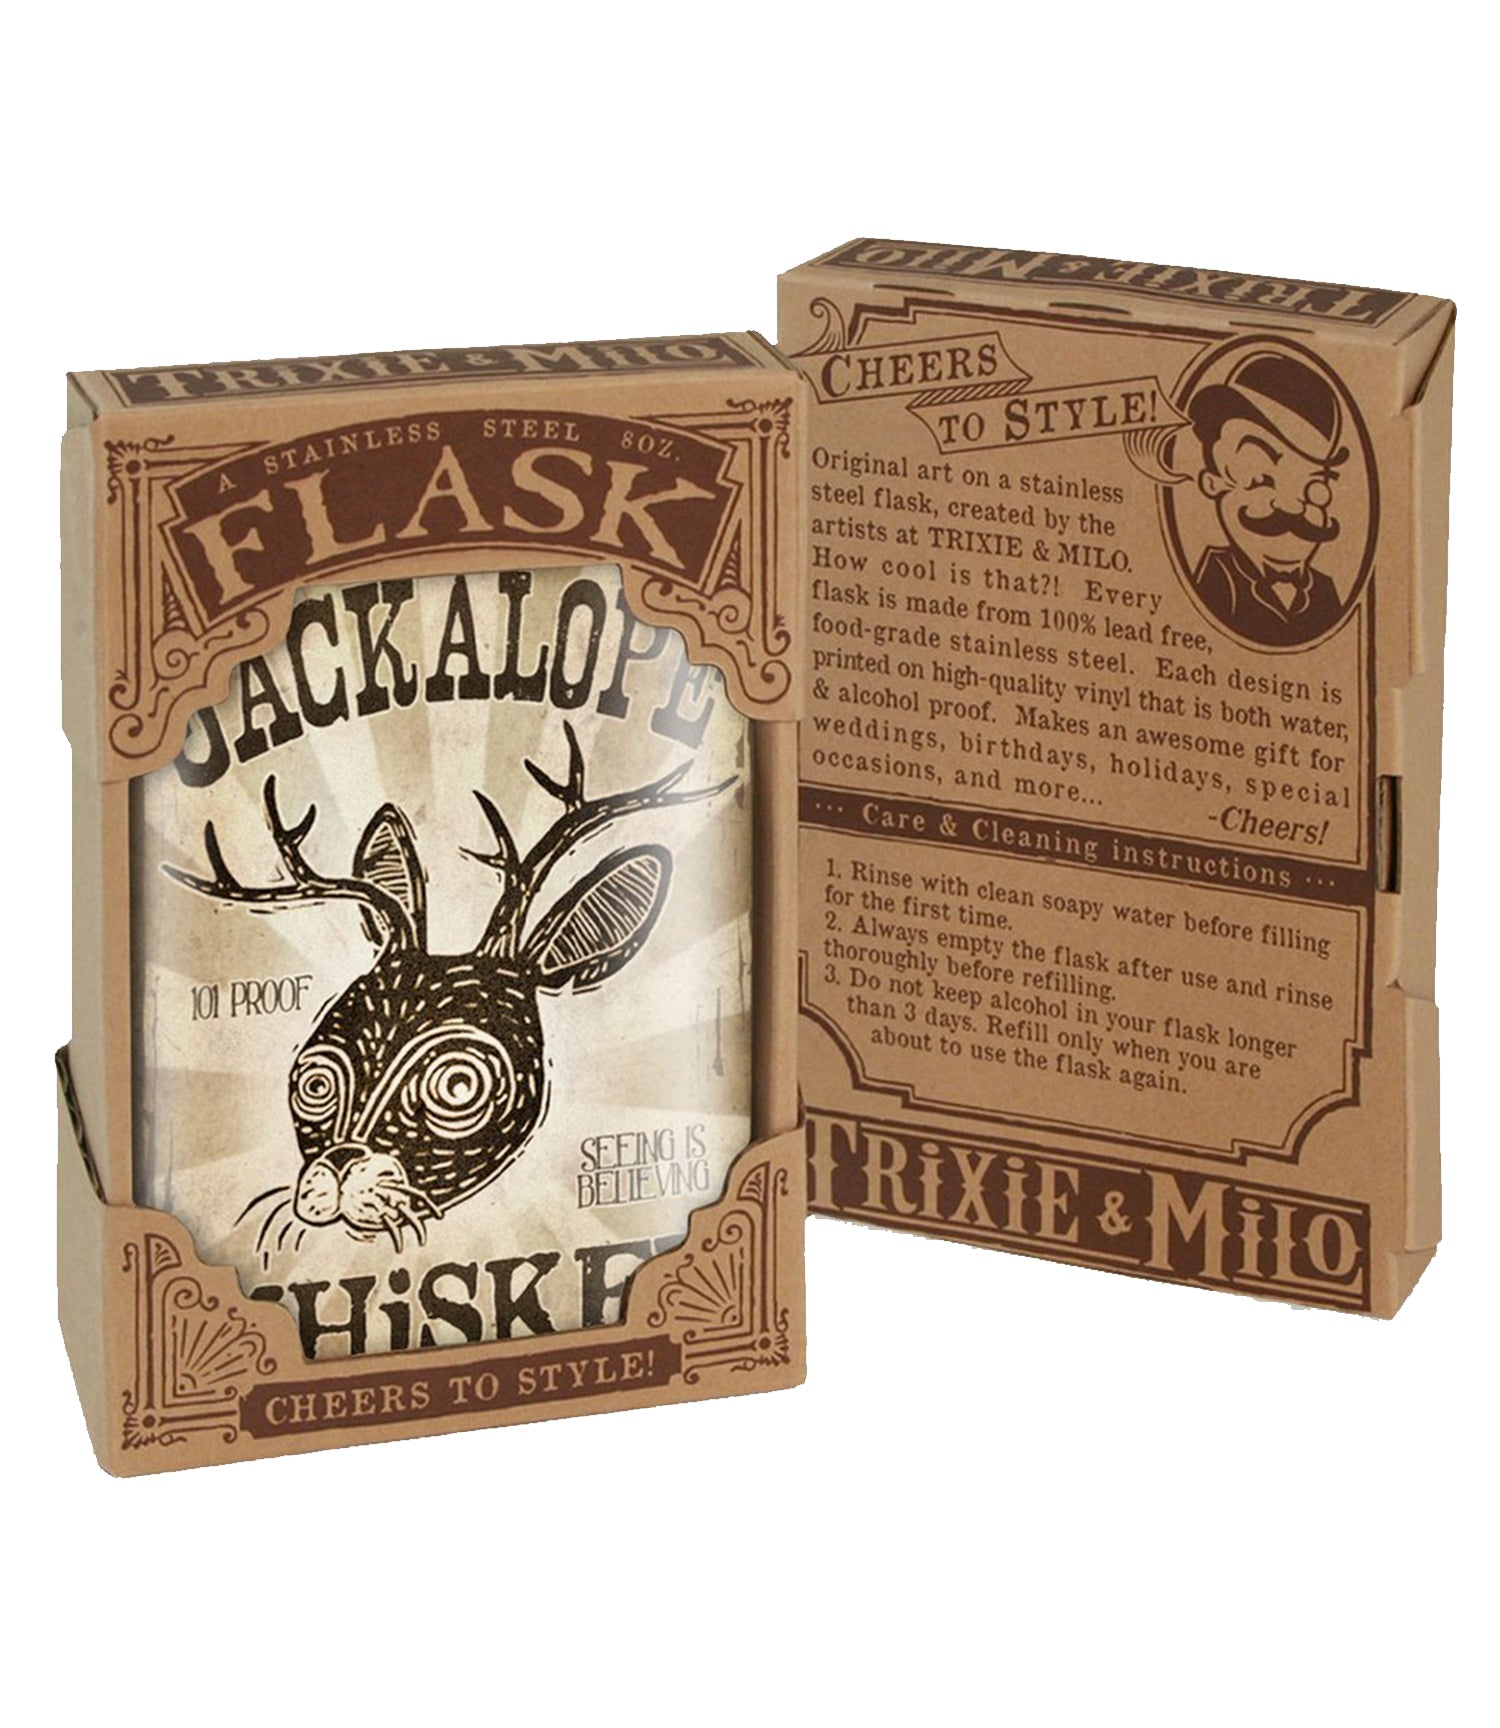 The JACKALOPE Stainless Steel Flask